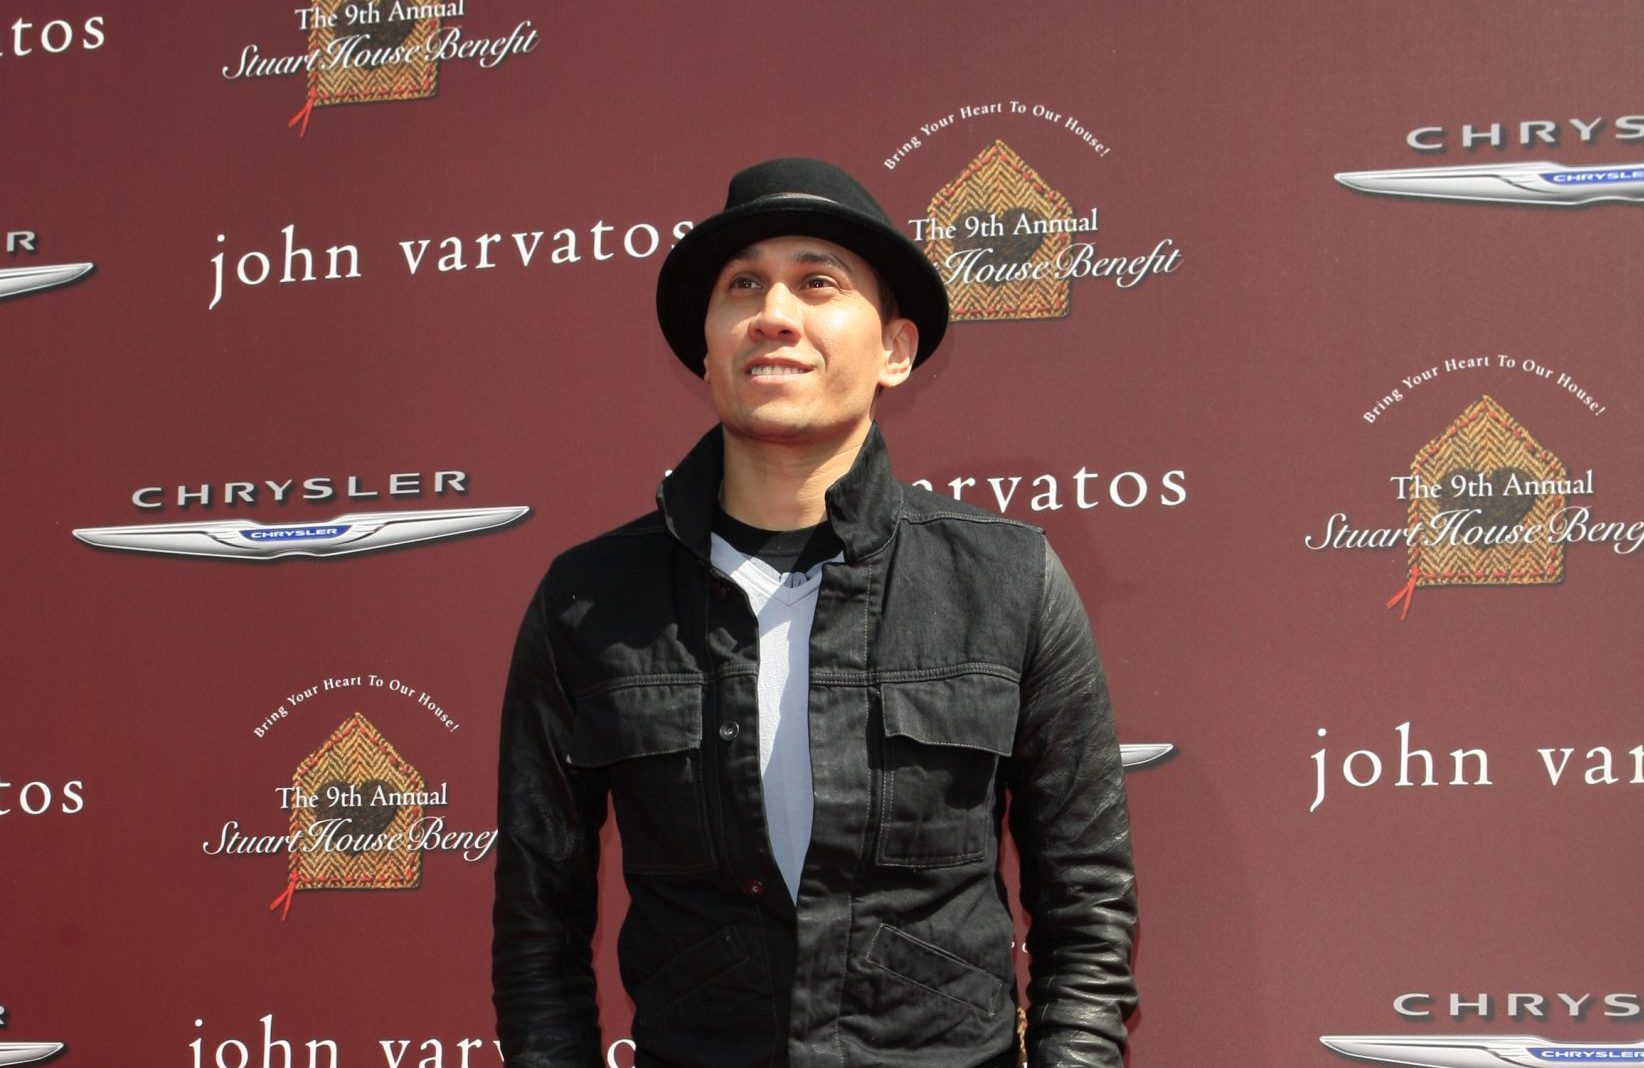 Taboo from the Black Eyed Peas looking up at the sky at an outdoor press event.He's dressed in black and wears a black hat.